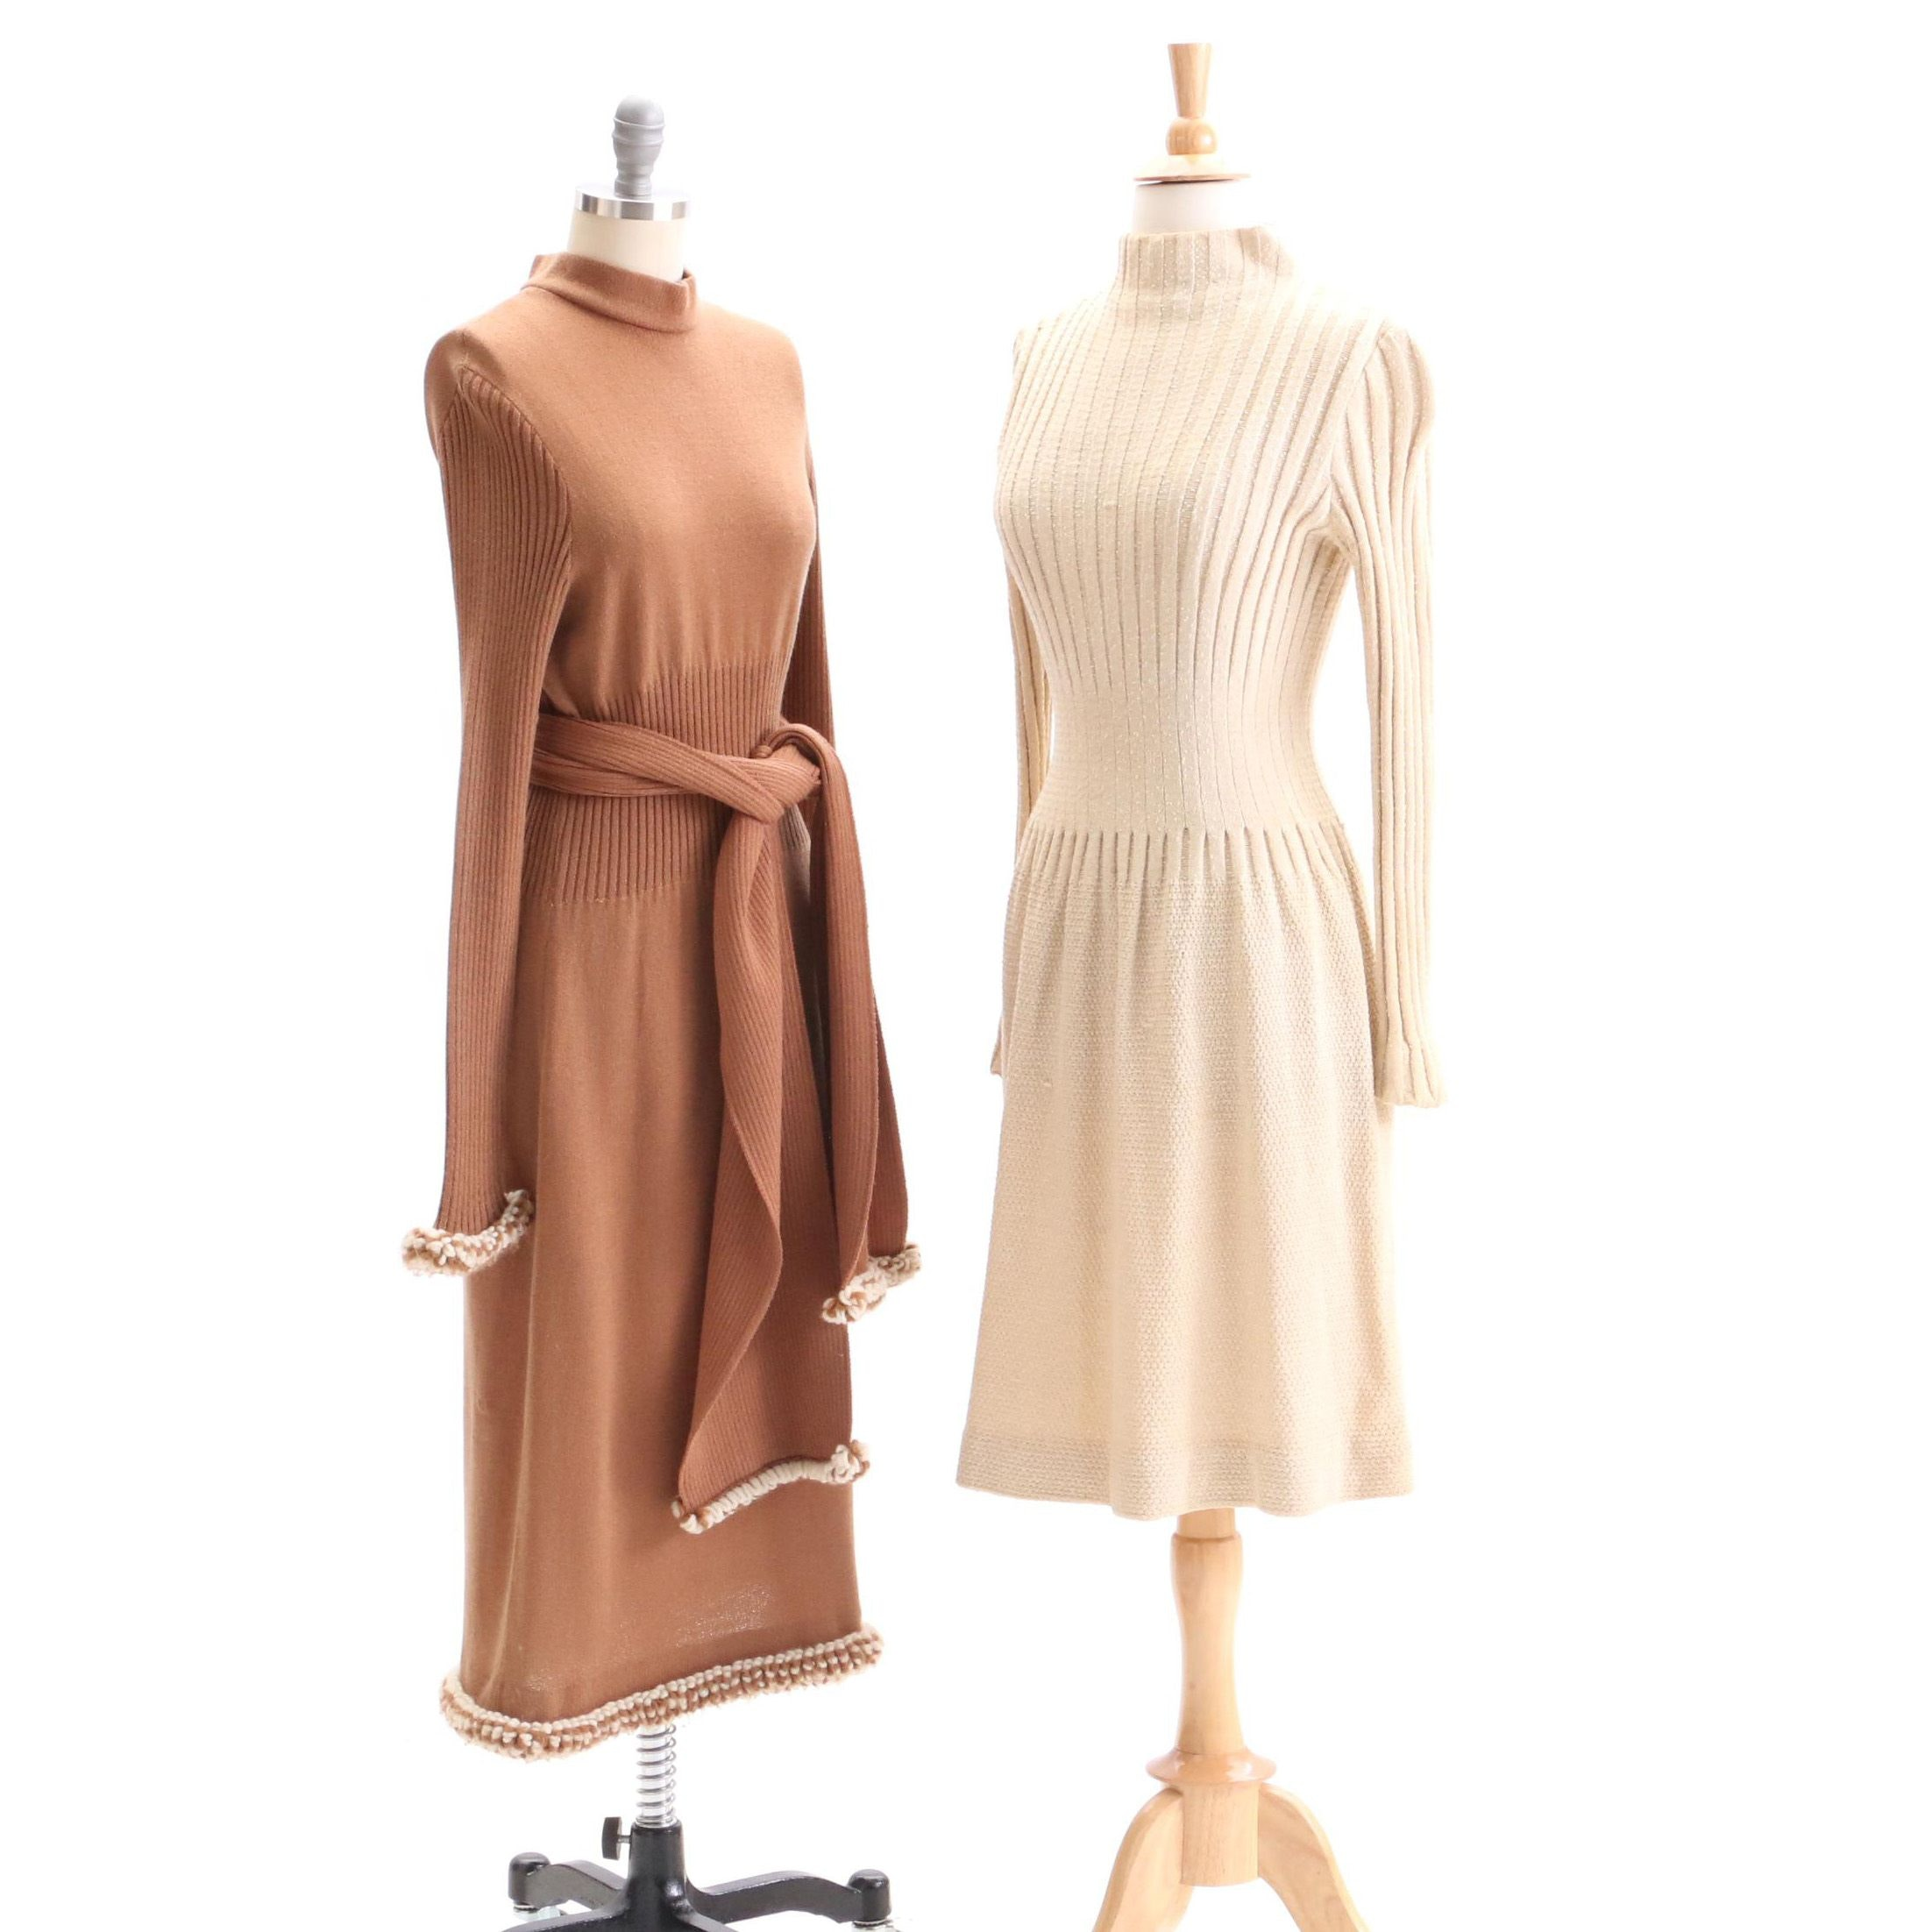 1970s Vintage Pauline Trigere and Pat Sandler Knit Sweater Dresses